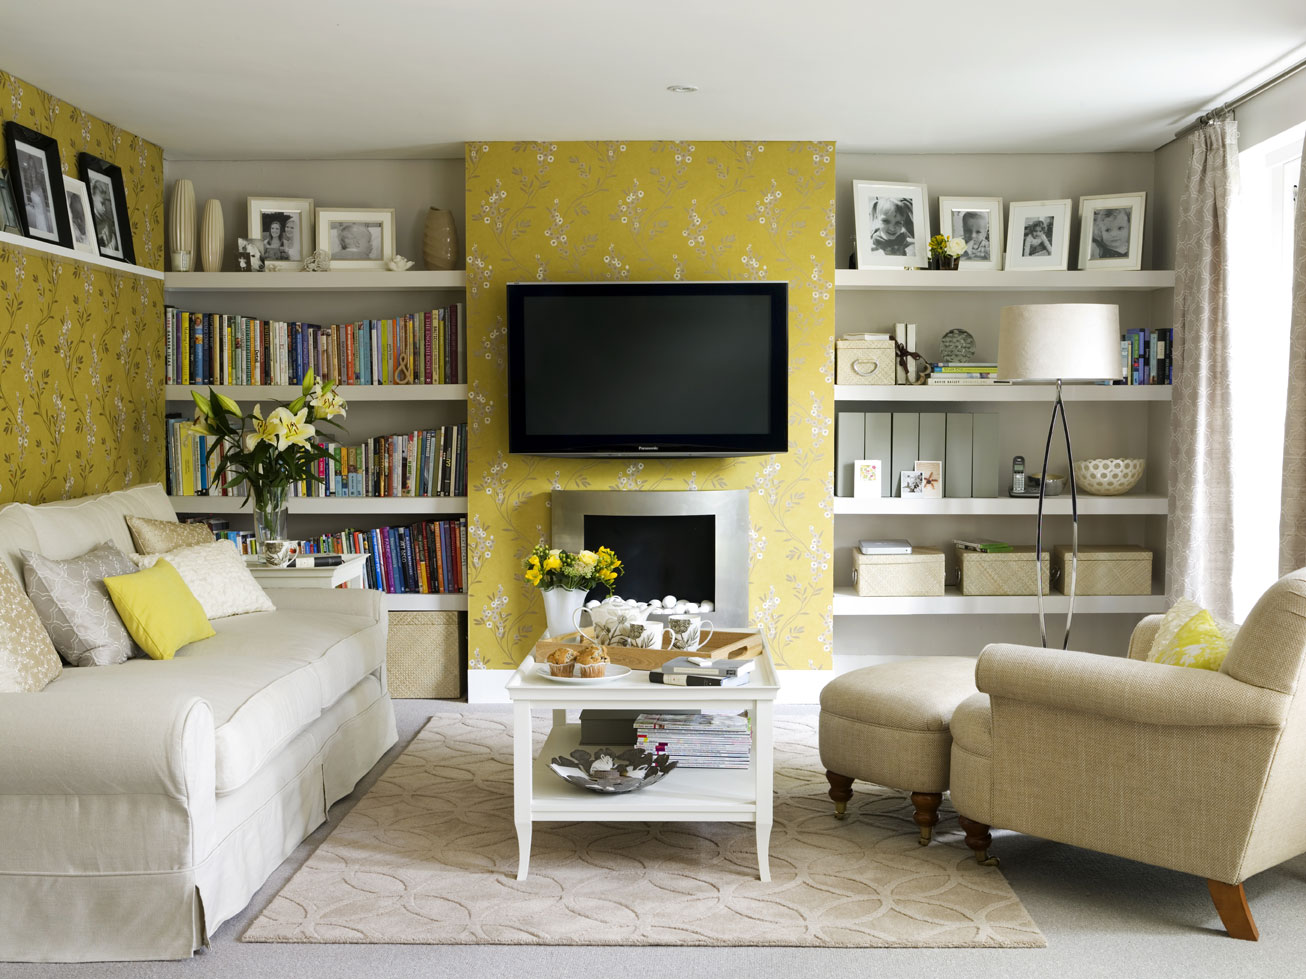 Living Room Yellow Ideas yellow room interior inspiration: 55+ rooms for your viewing pleasure